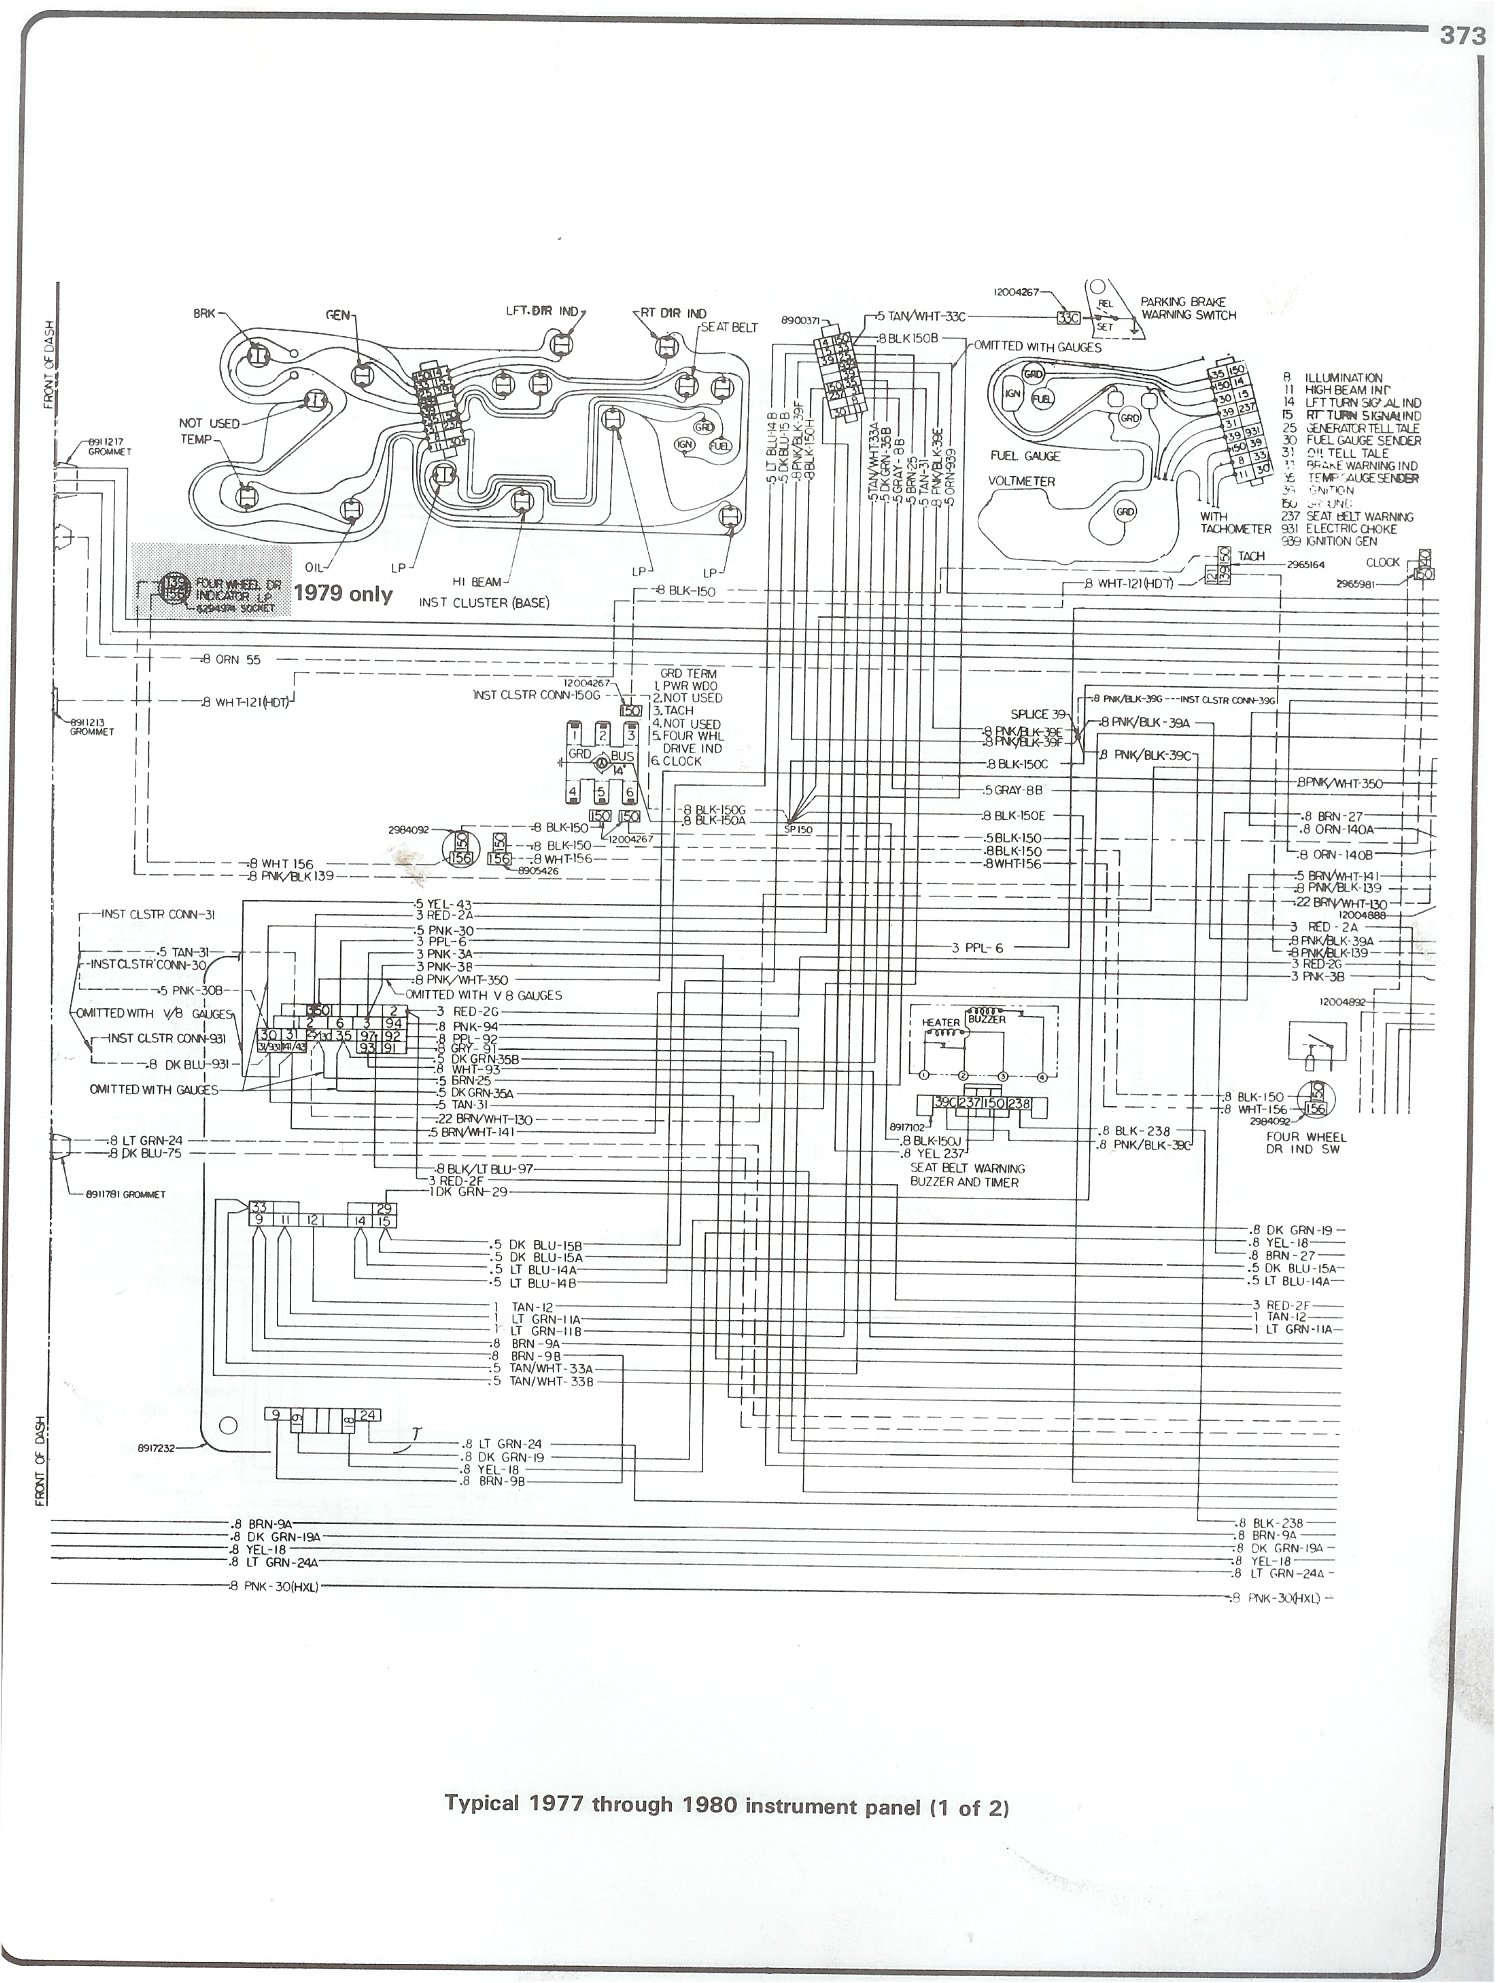 1978 suburban wiring diagram - wiring diagram 77 gmc wiring diagram